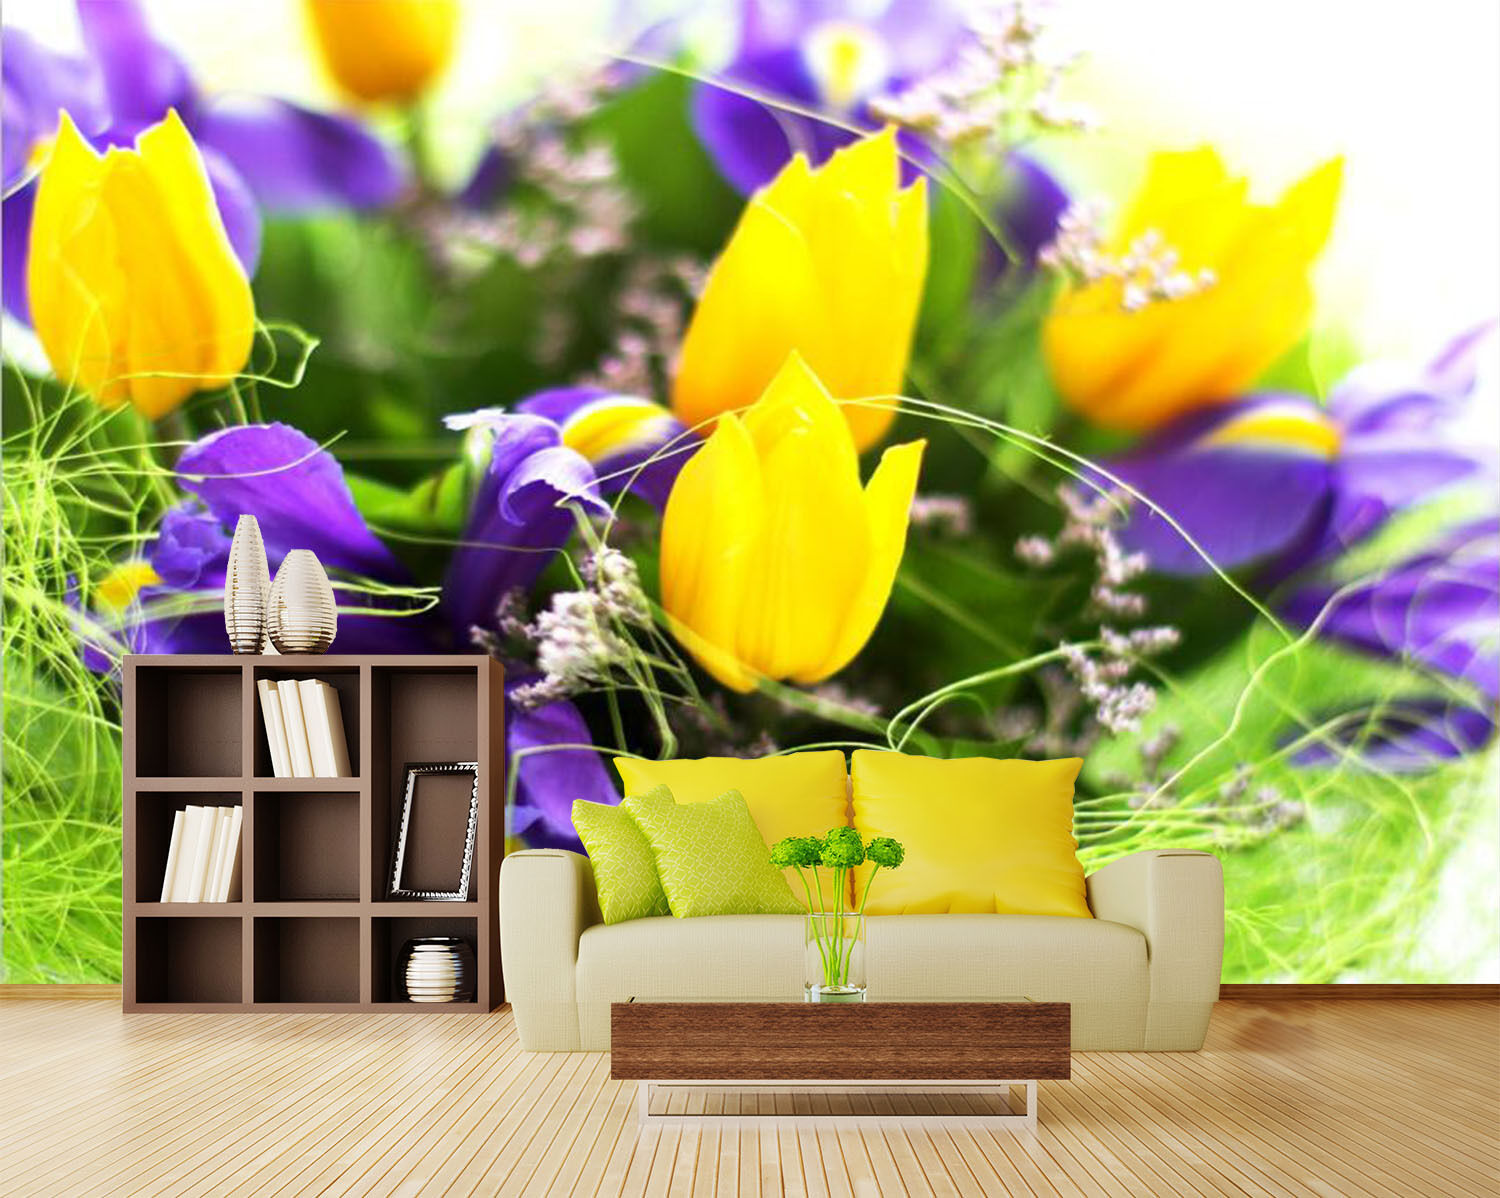 3D Tulipes yellows 4 Photo Papier Peint en Autocollant Murale Plafond Chambre Art